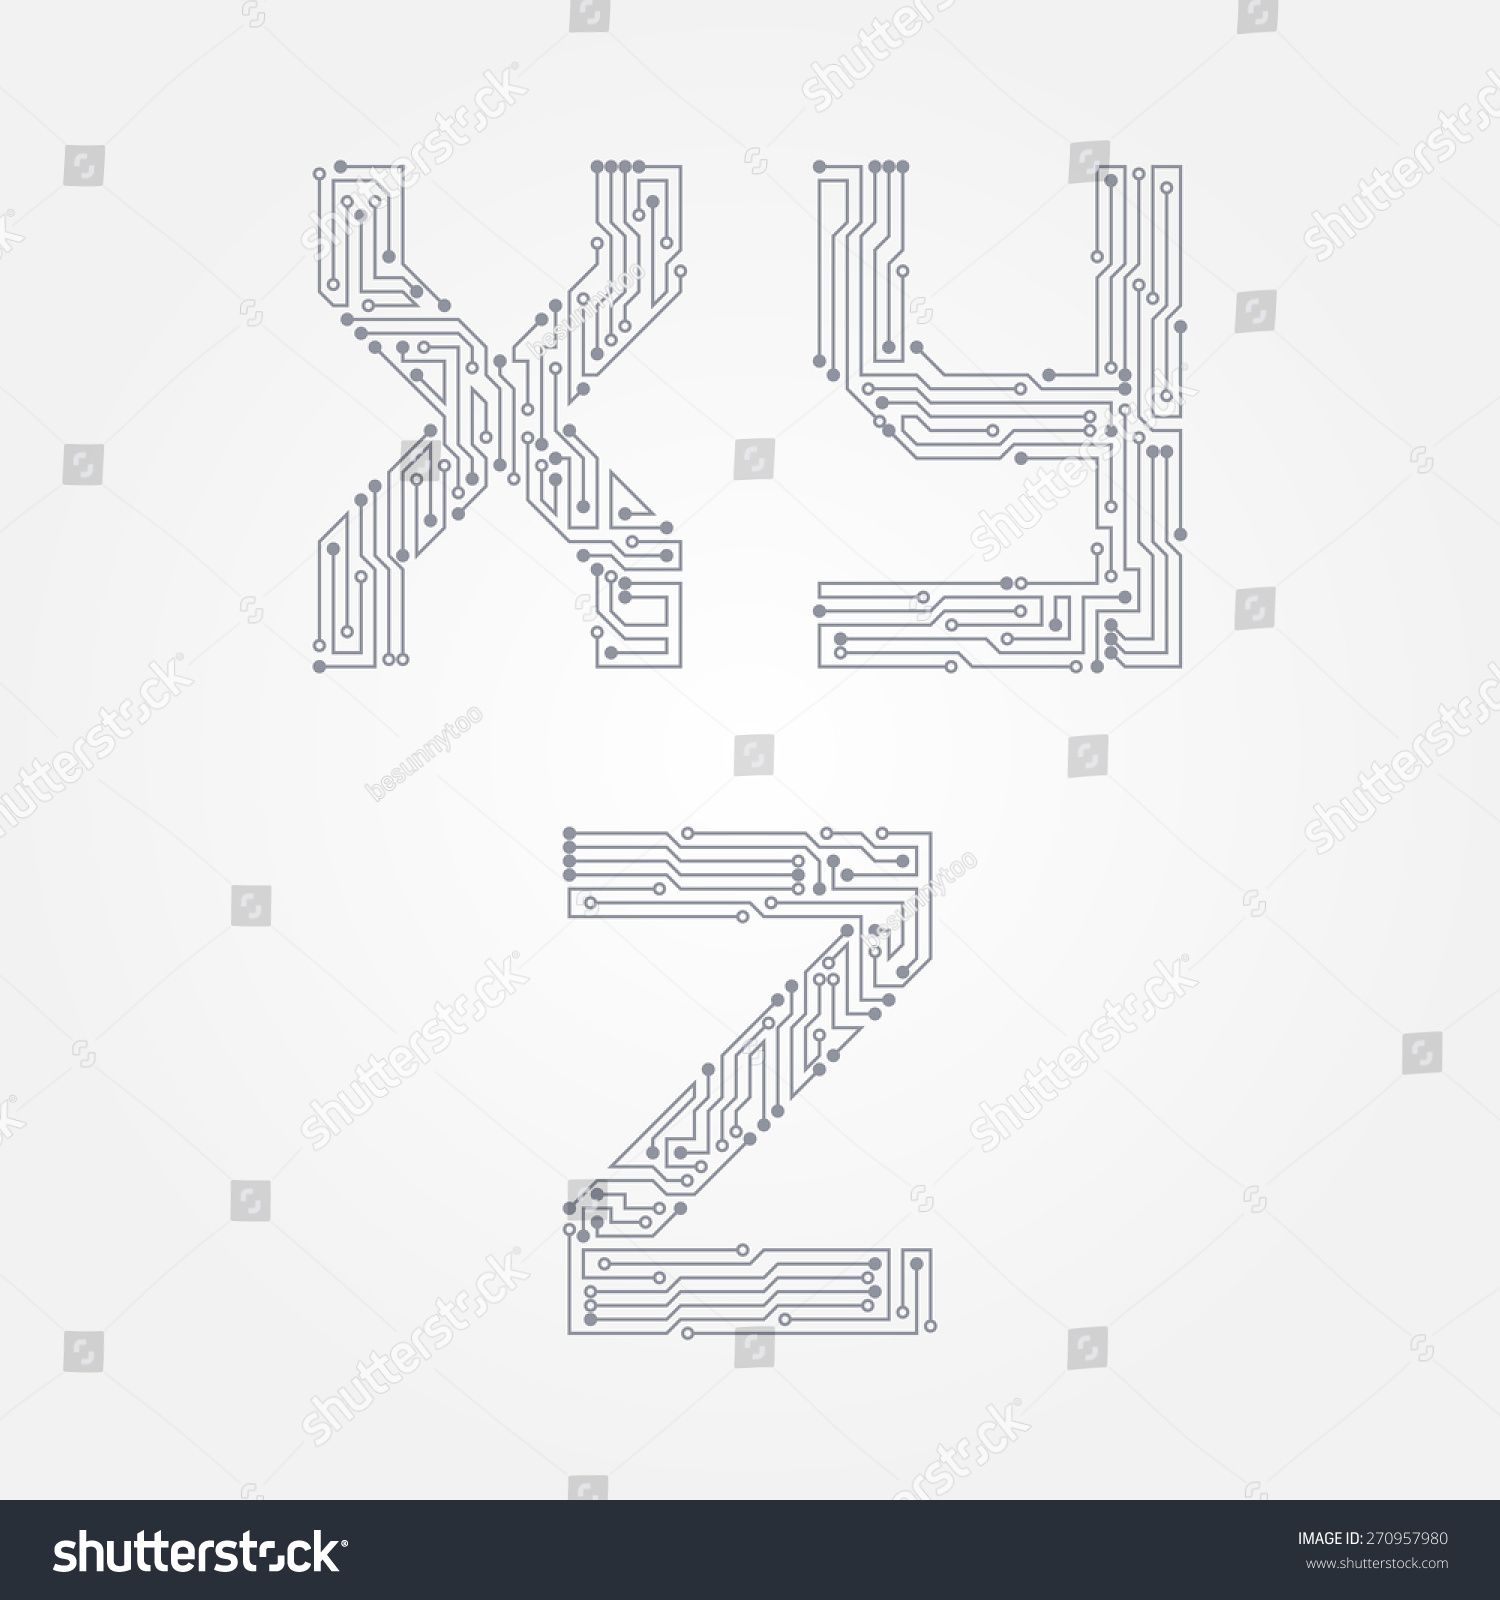 Astounding Circuit Board Form X Y Z Stock Vector Royalty Free 270957980 Wiring 101 Breceaxxcnl